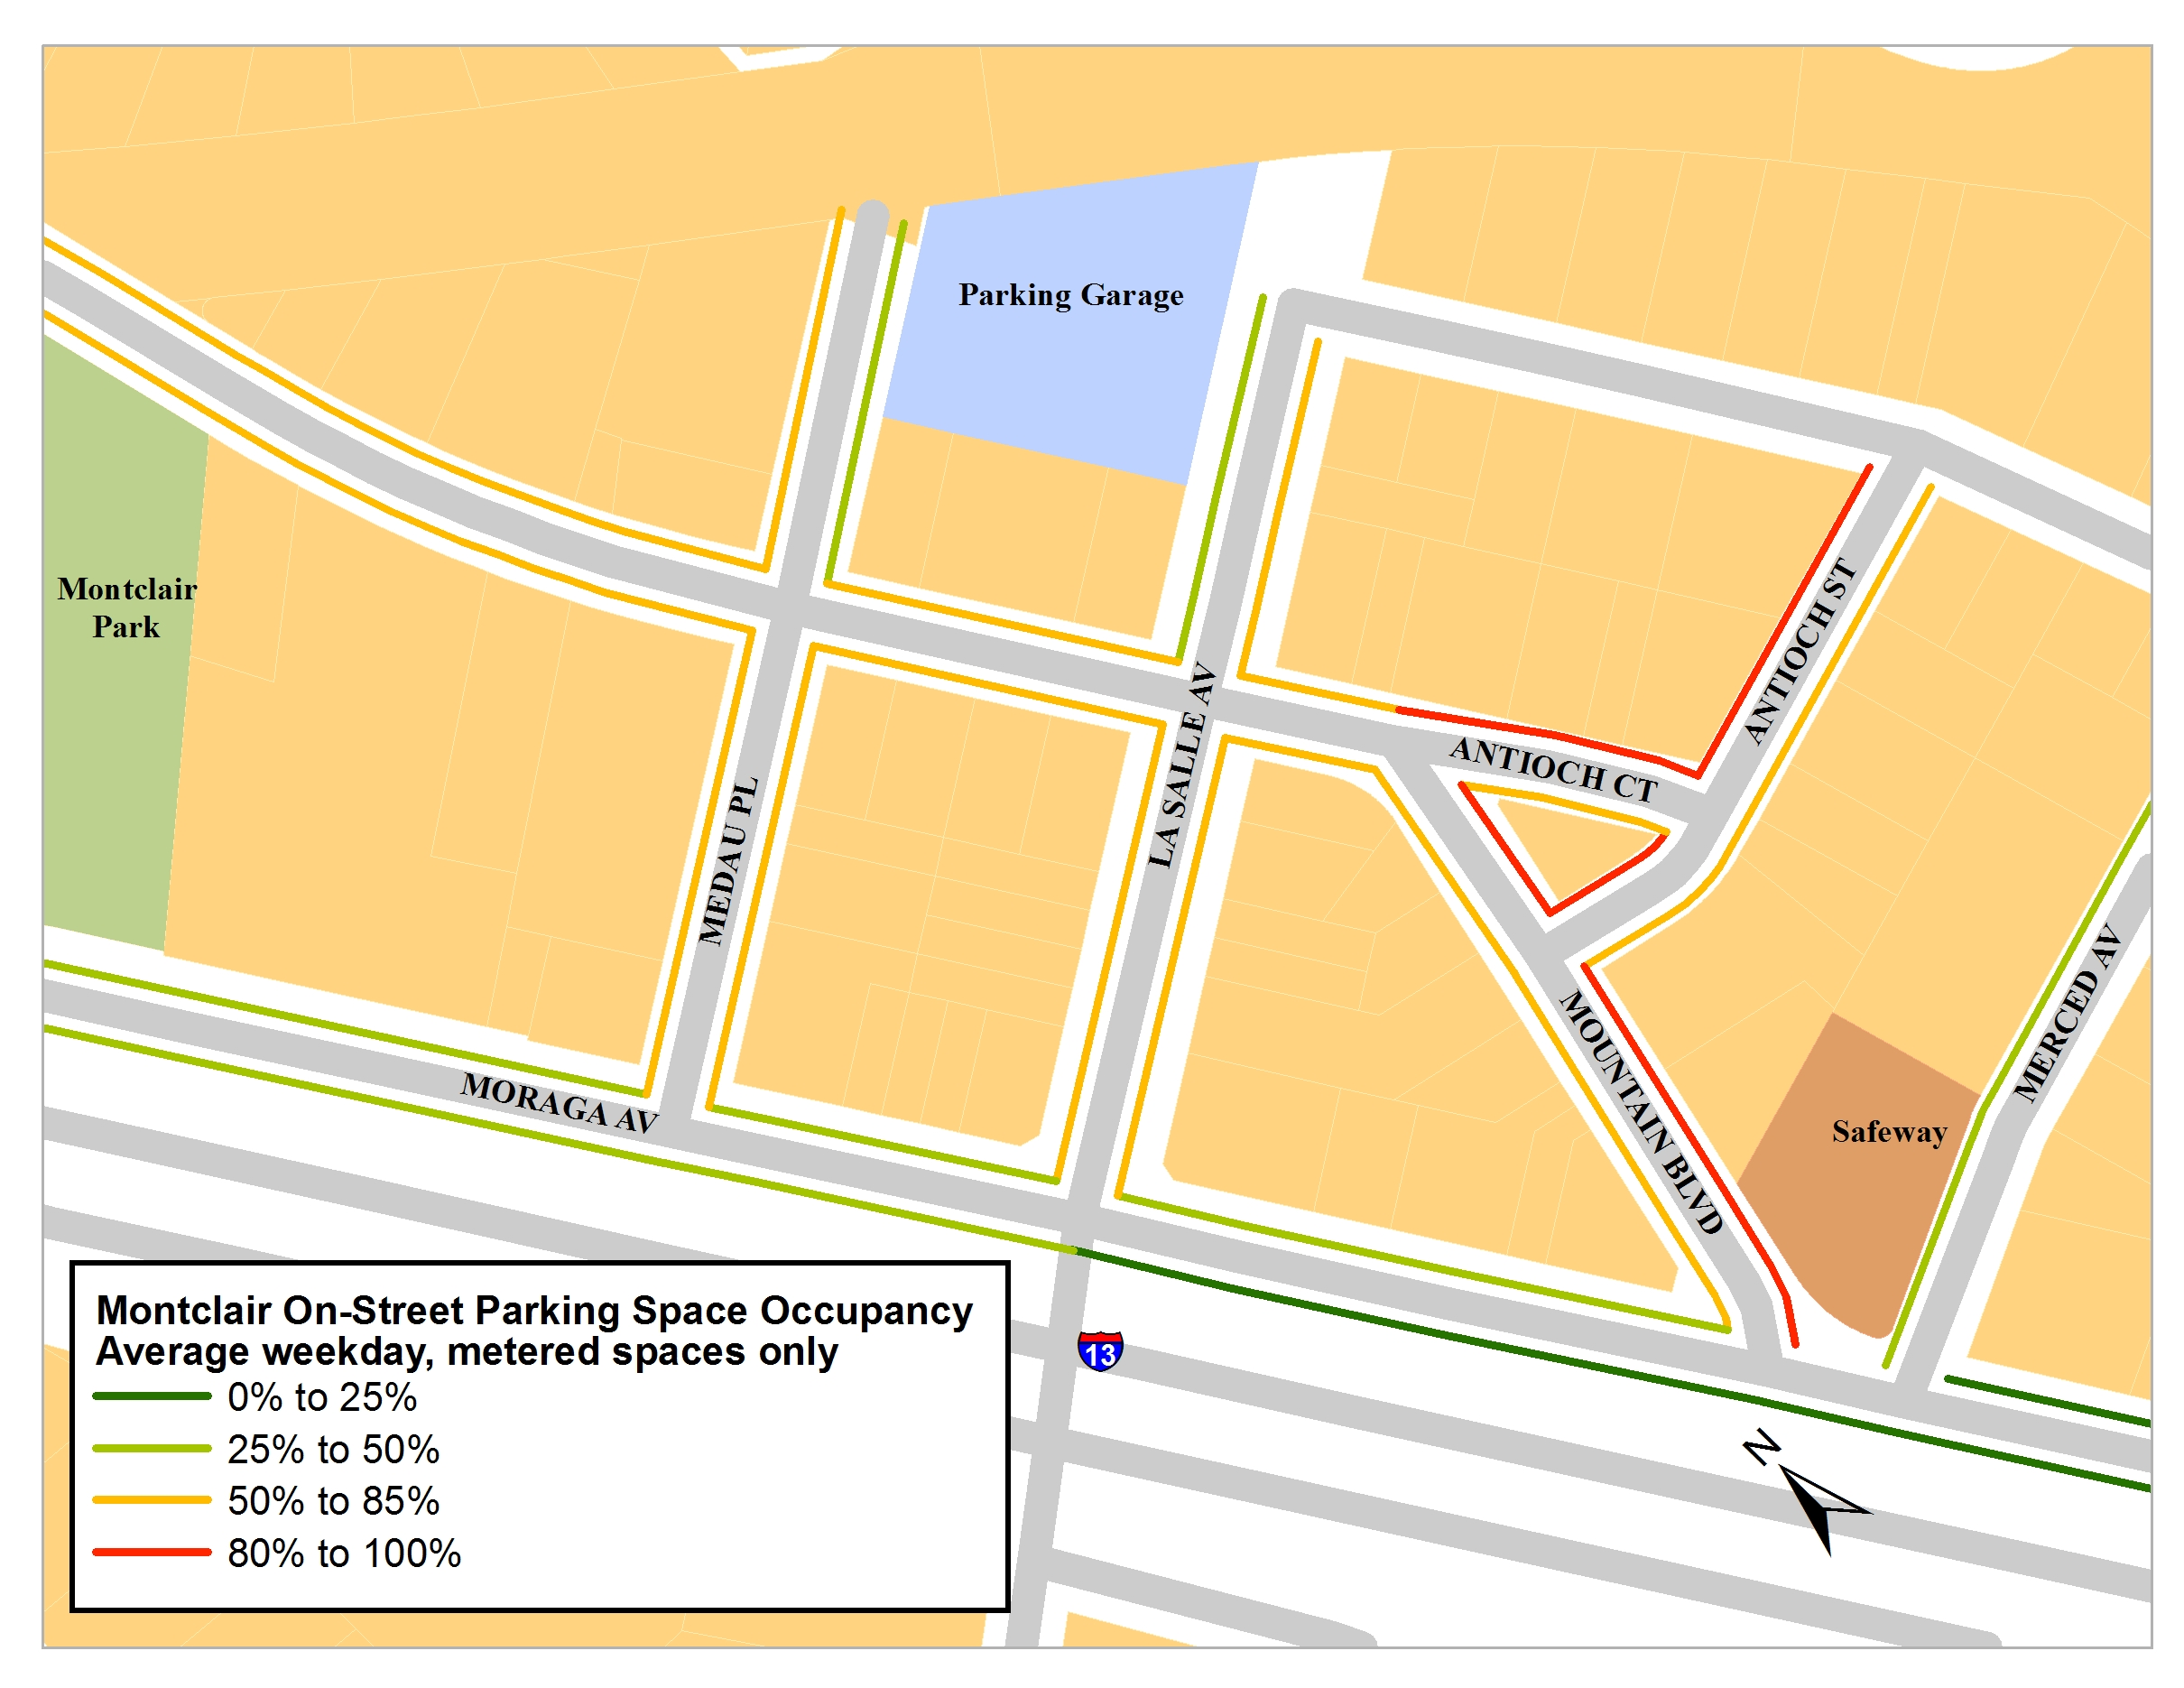 Parking occupancy map for Montclair